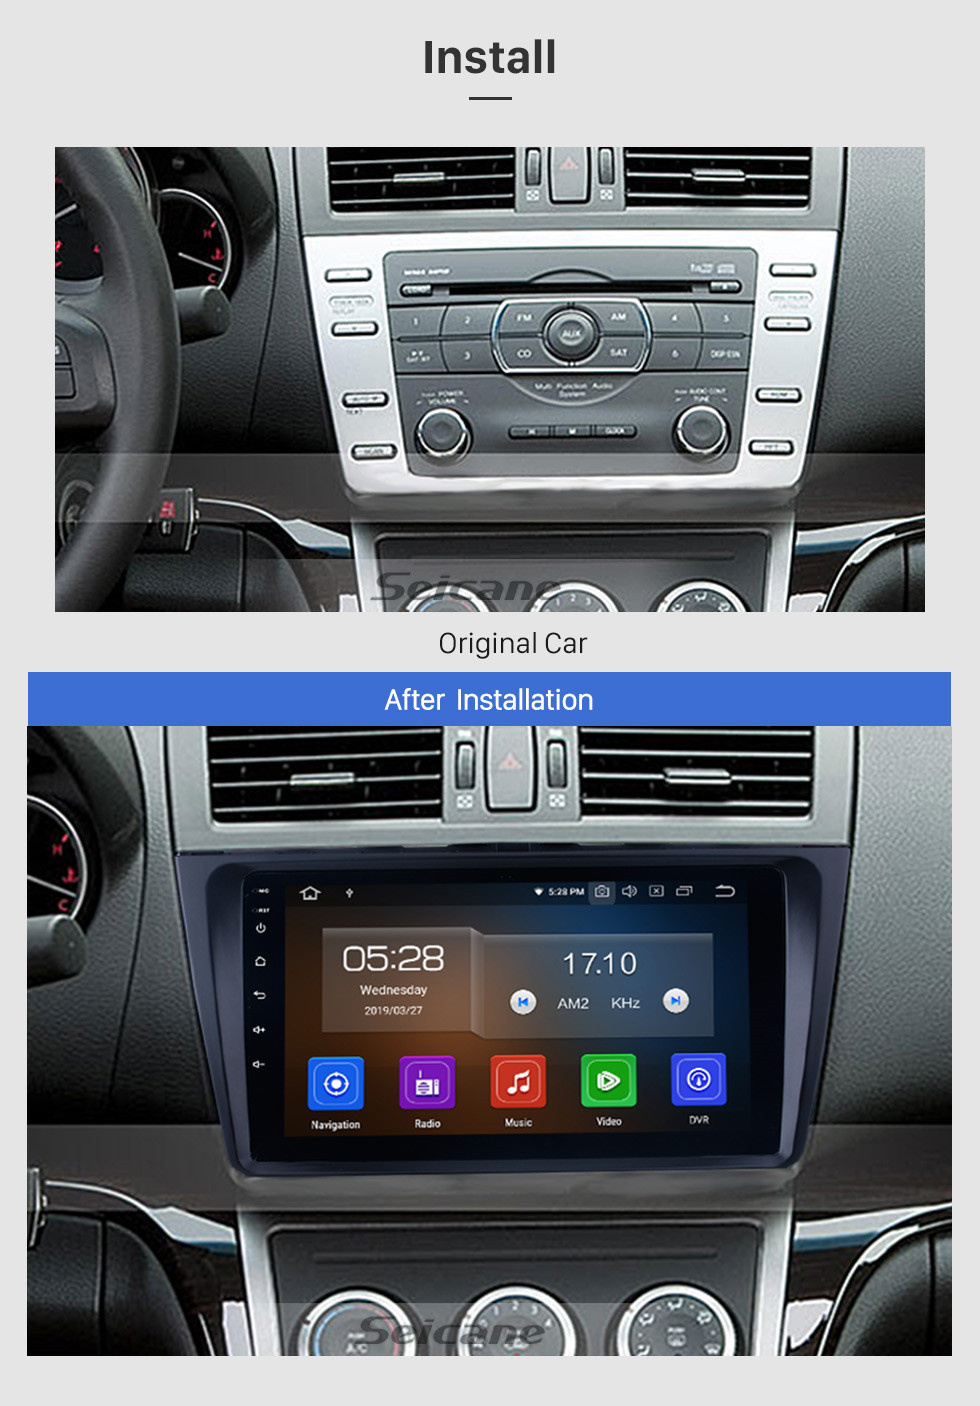 Seicane 10.1 inch for 2008-2015 Mazda 6 Rui wing Android 10.0 Radio GPS Navigation System with full 1024*600 Touchscreen Bluetooth Mirror link TPMS OBD2 DVR Rearview camera TV carplay